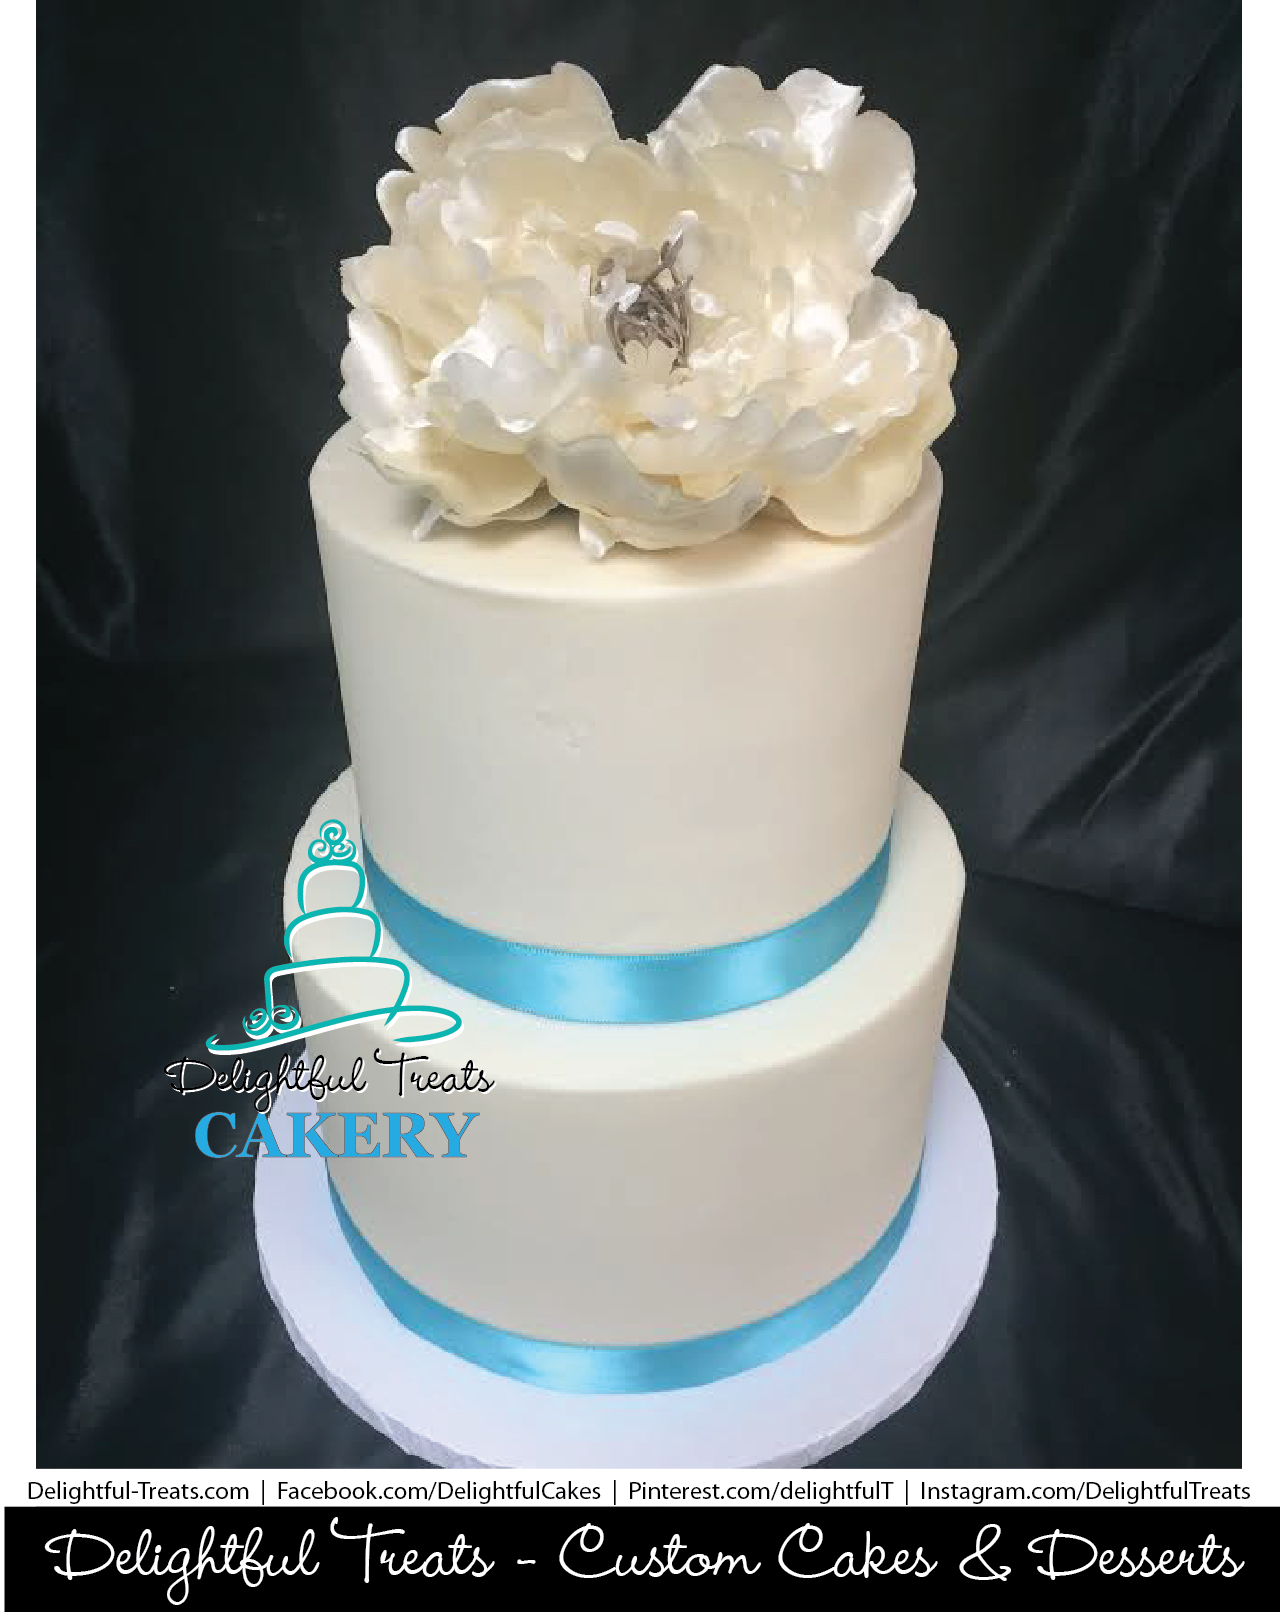 2 Tier Buttercream Wedding Cake With Ribbons And Flower By Delightful Treats Cakery Orlando